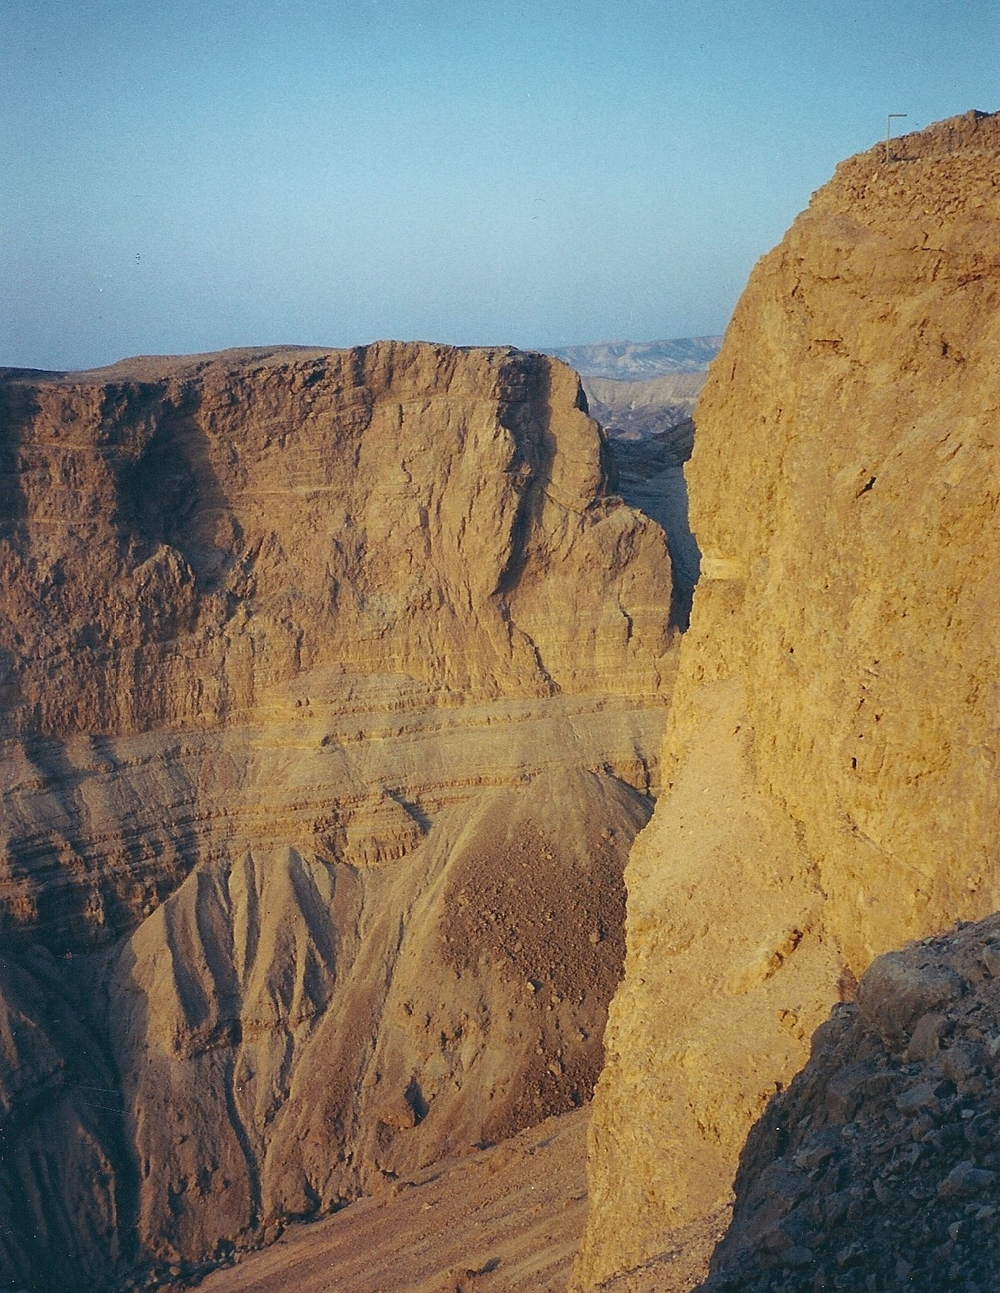 The Negev: Abraham and Sarah's Desert                Masada, Israel  2000